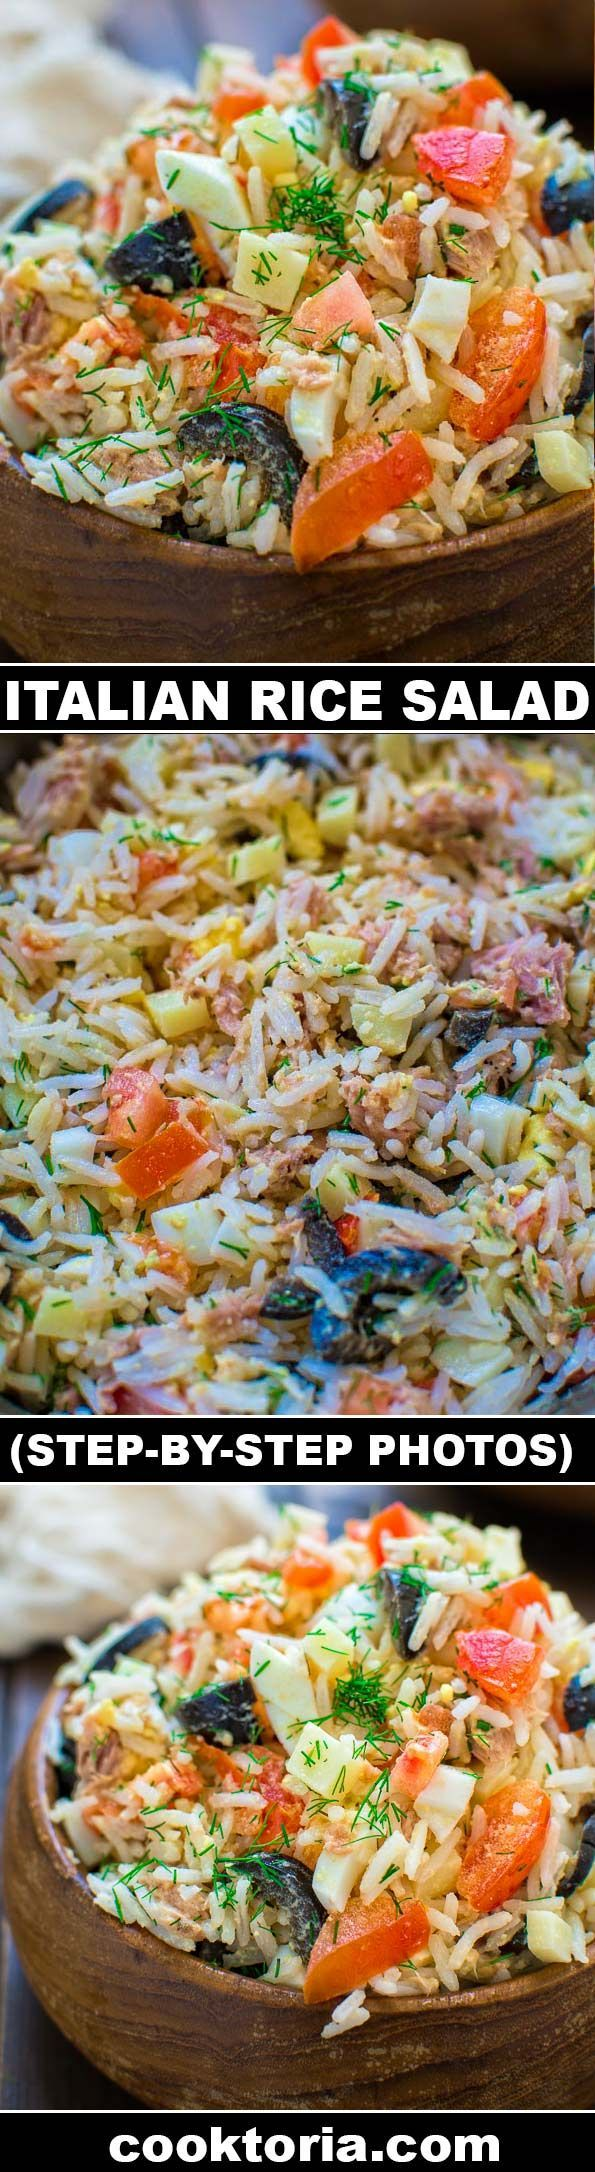 White rice mixed with tuna, fresh tomatoes, Swiss cheese, olives, and eggs, make this Italian Rice Salad a great lunch or a light dinner! ❤️ COOKTORIA.COM